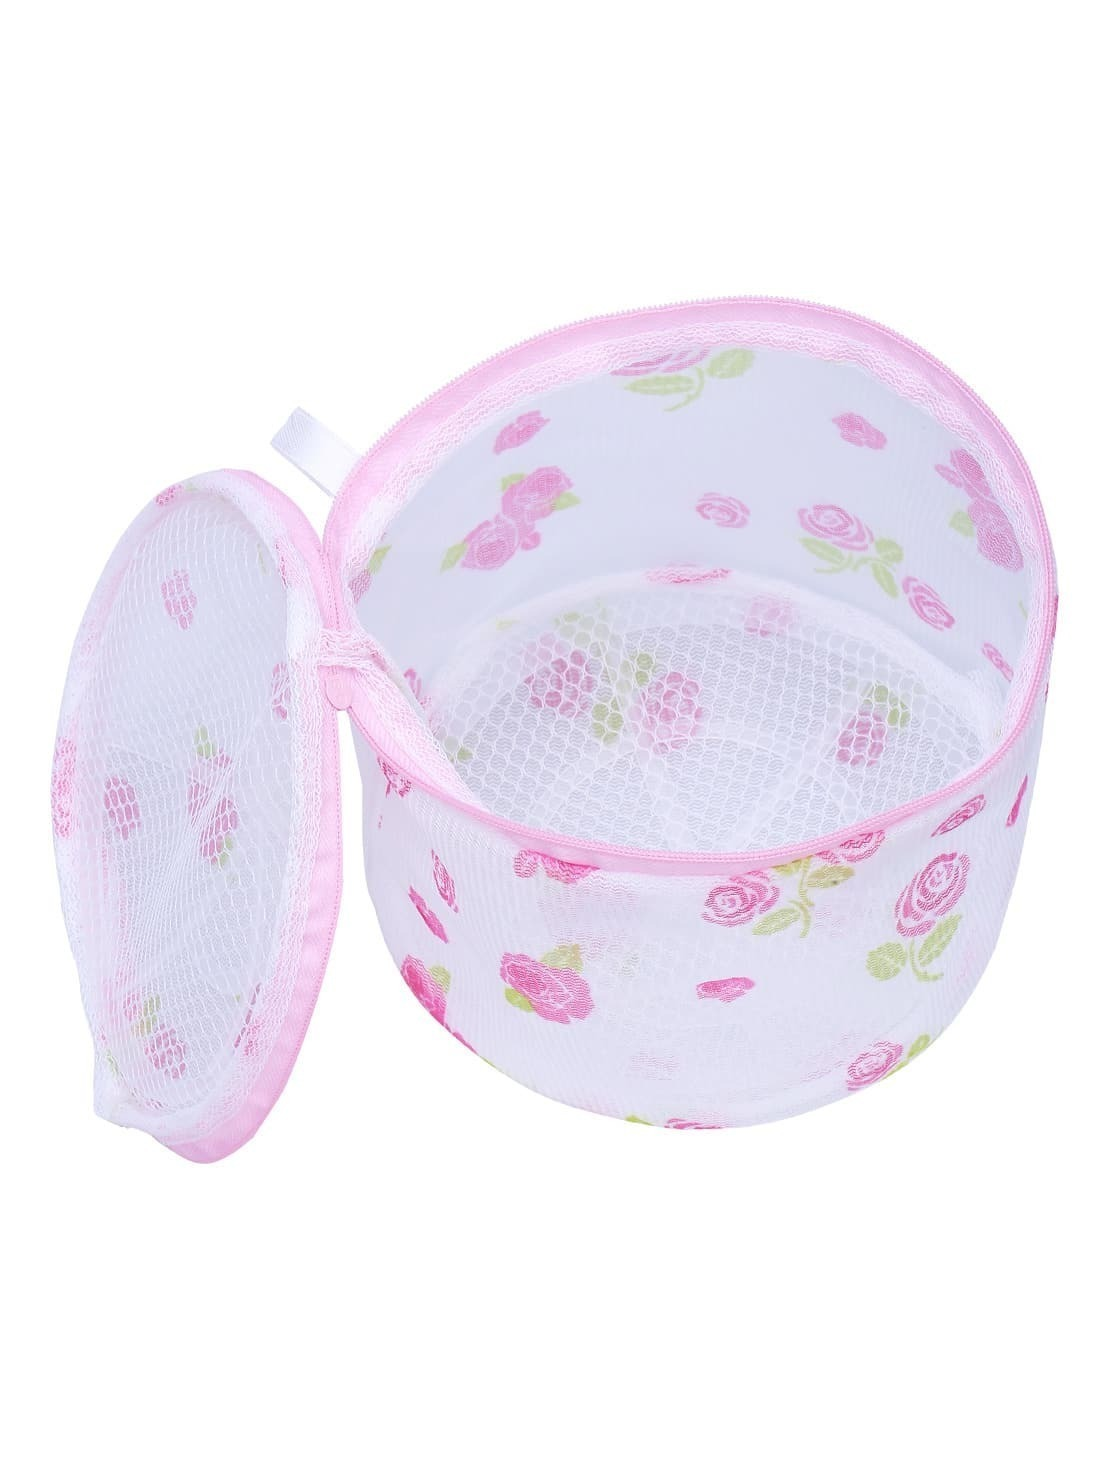 Laundry Mesh Wash Basket Net Storage Zipper Print Bag